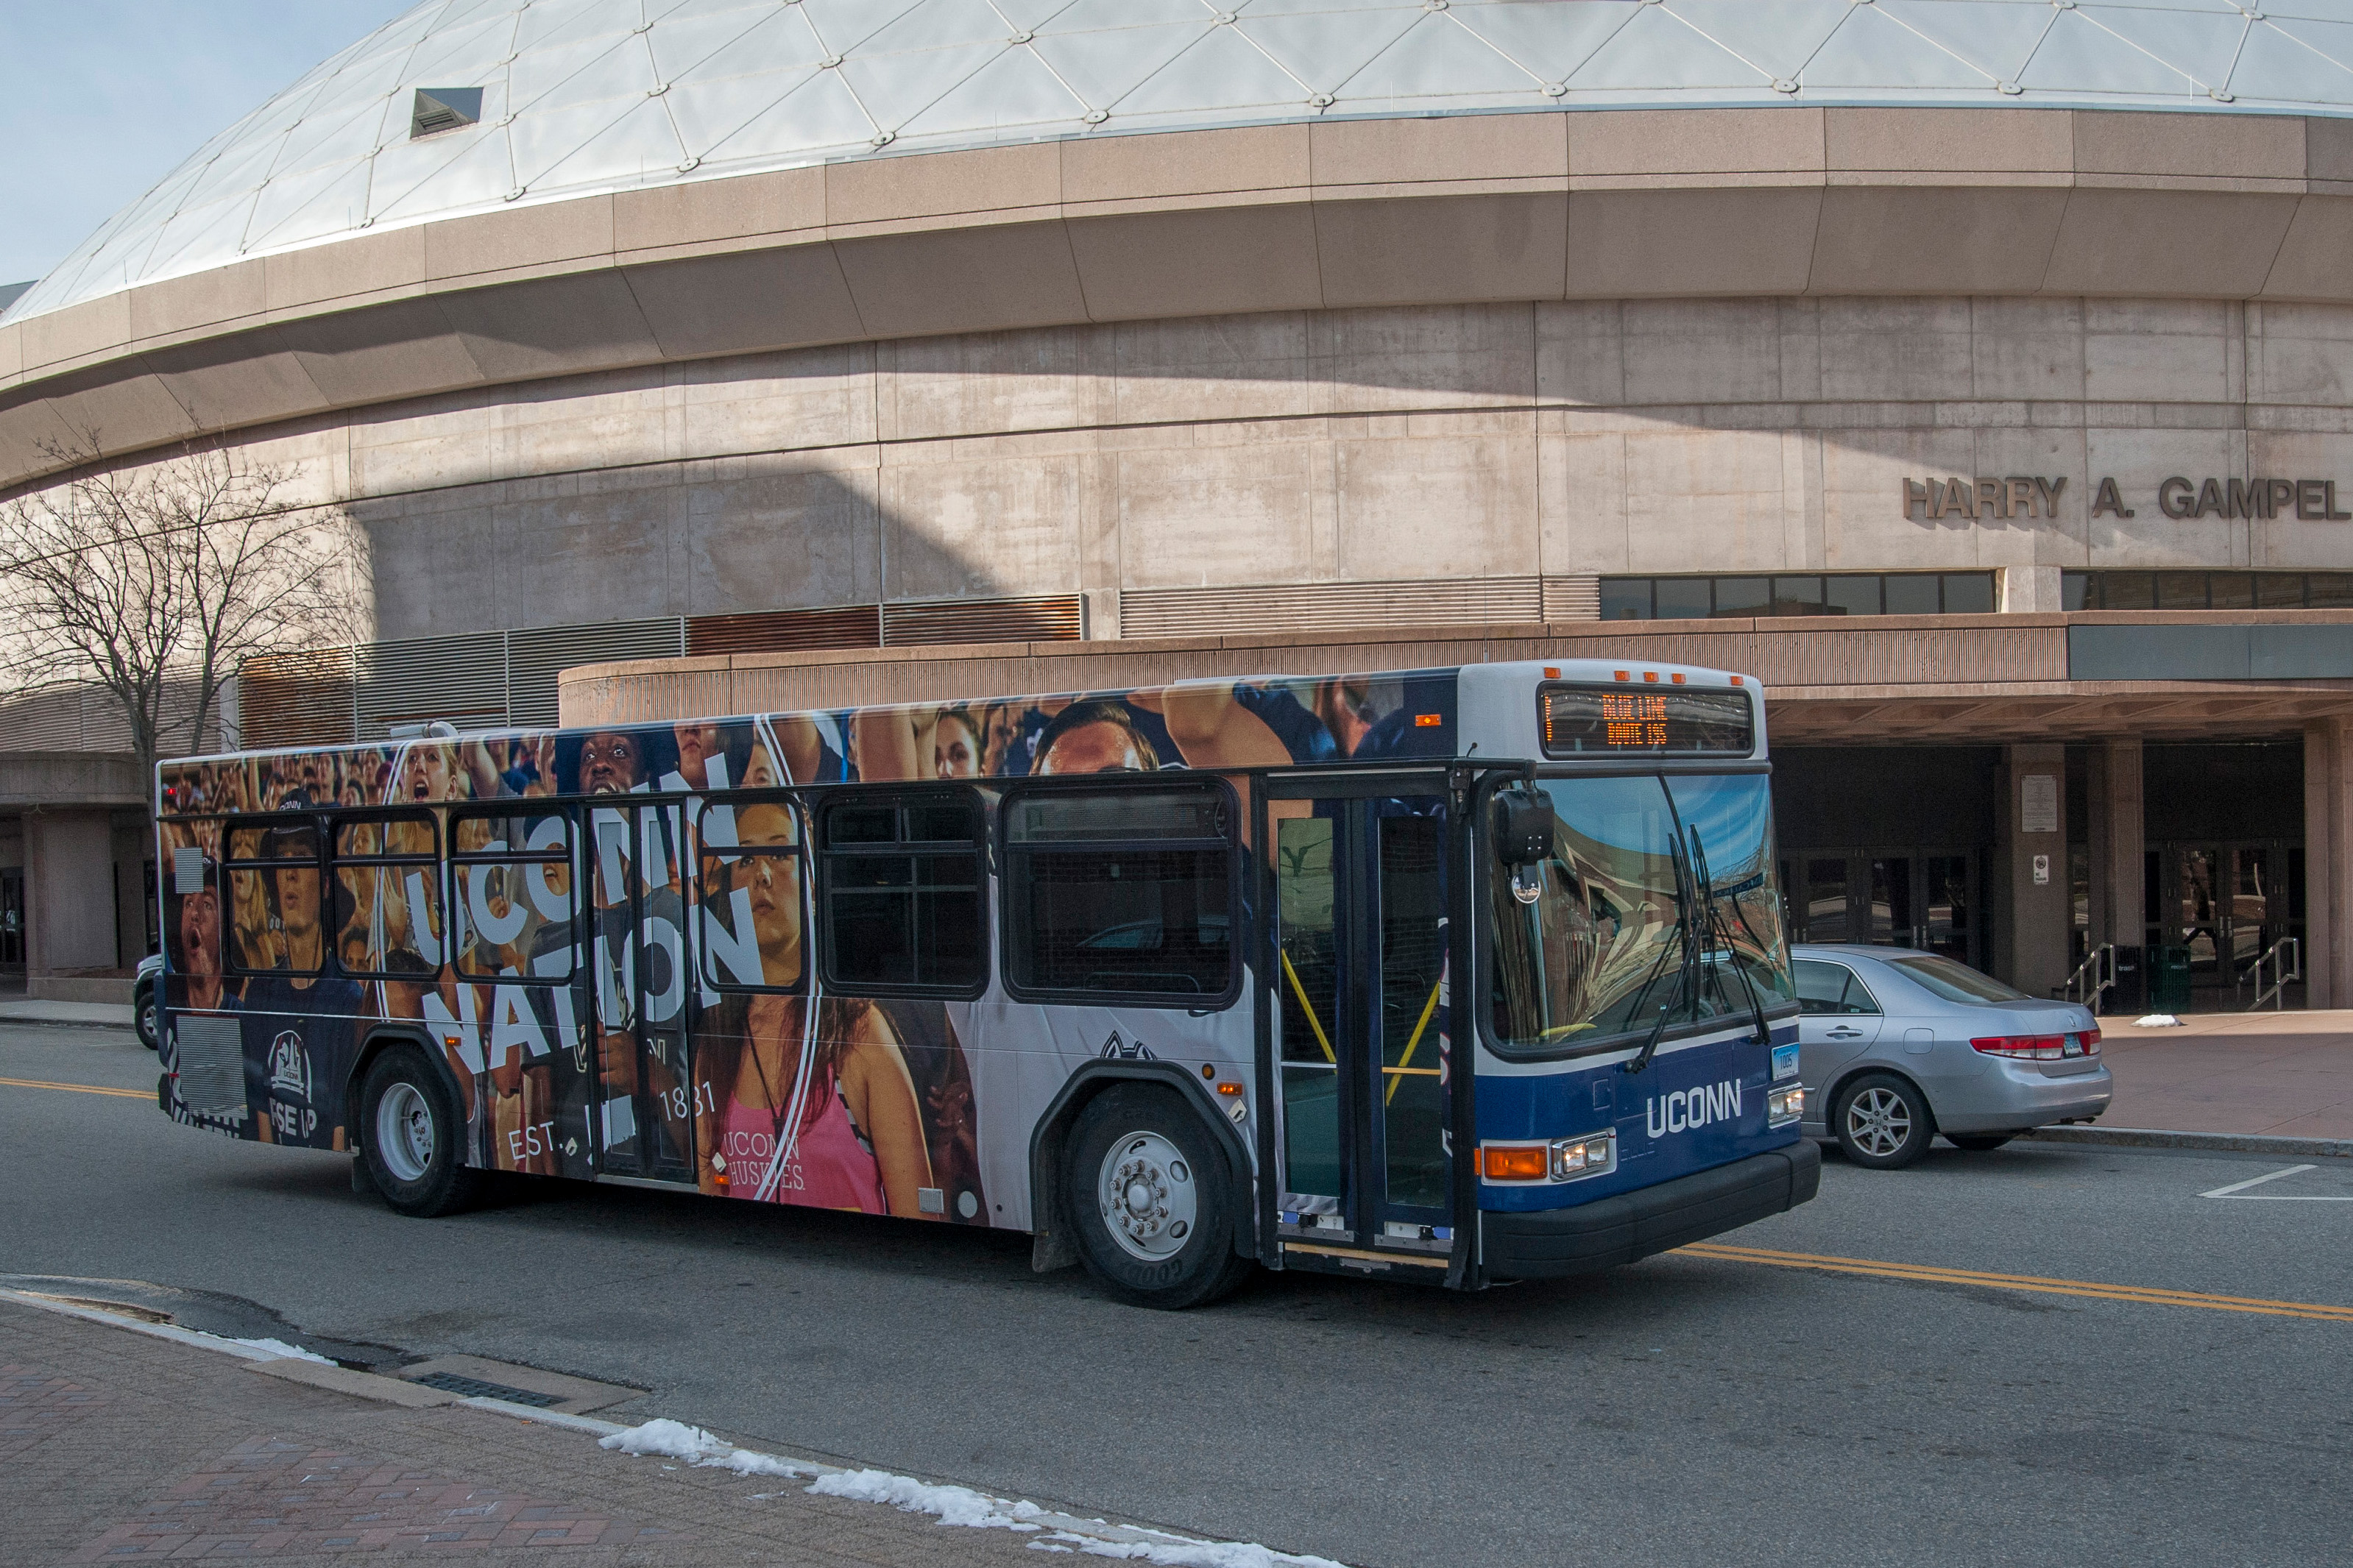 Views of the UConn Nation transportation buses on Jan. 7, 2016. (Sean Flynn/UConn Photo)